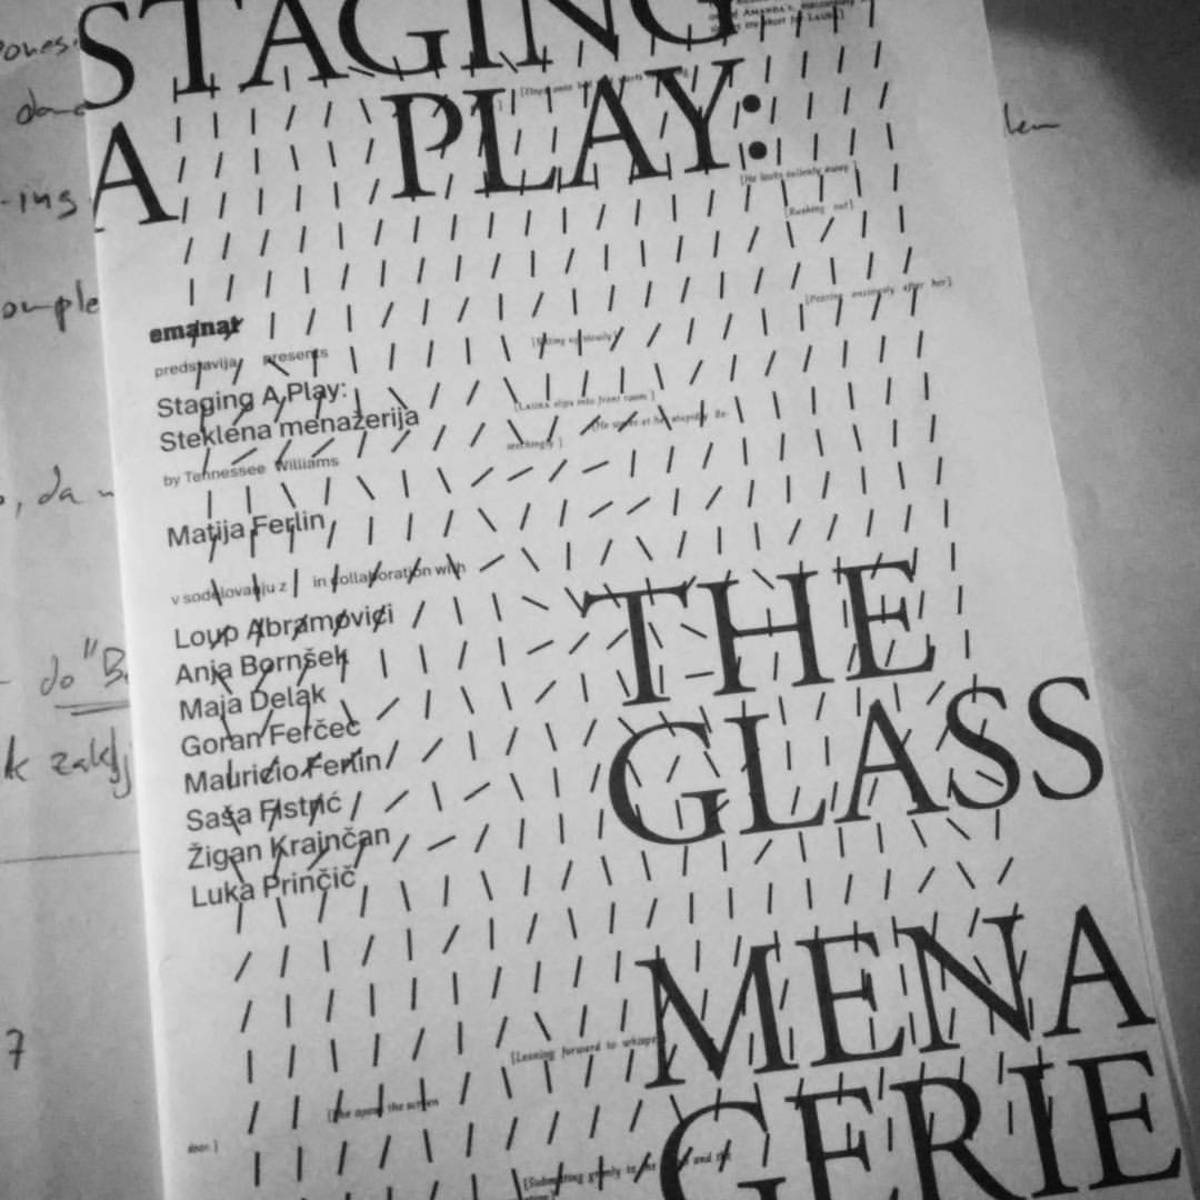 glass menagerie escape reality The glass menagerie she is a fragile woman incapable of facing the real world instead, she chooses to escape reality by living a world of illusions and dreams.